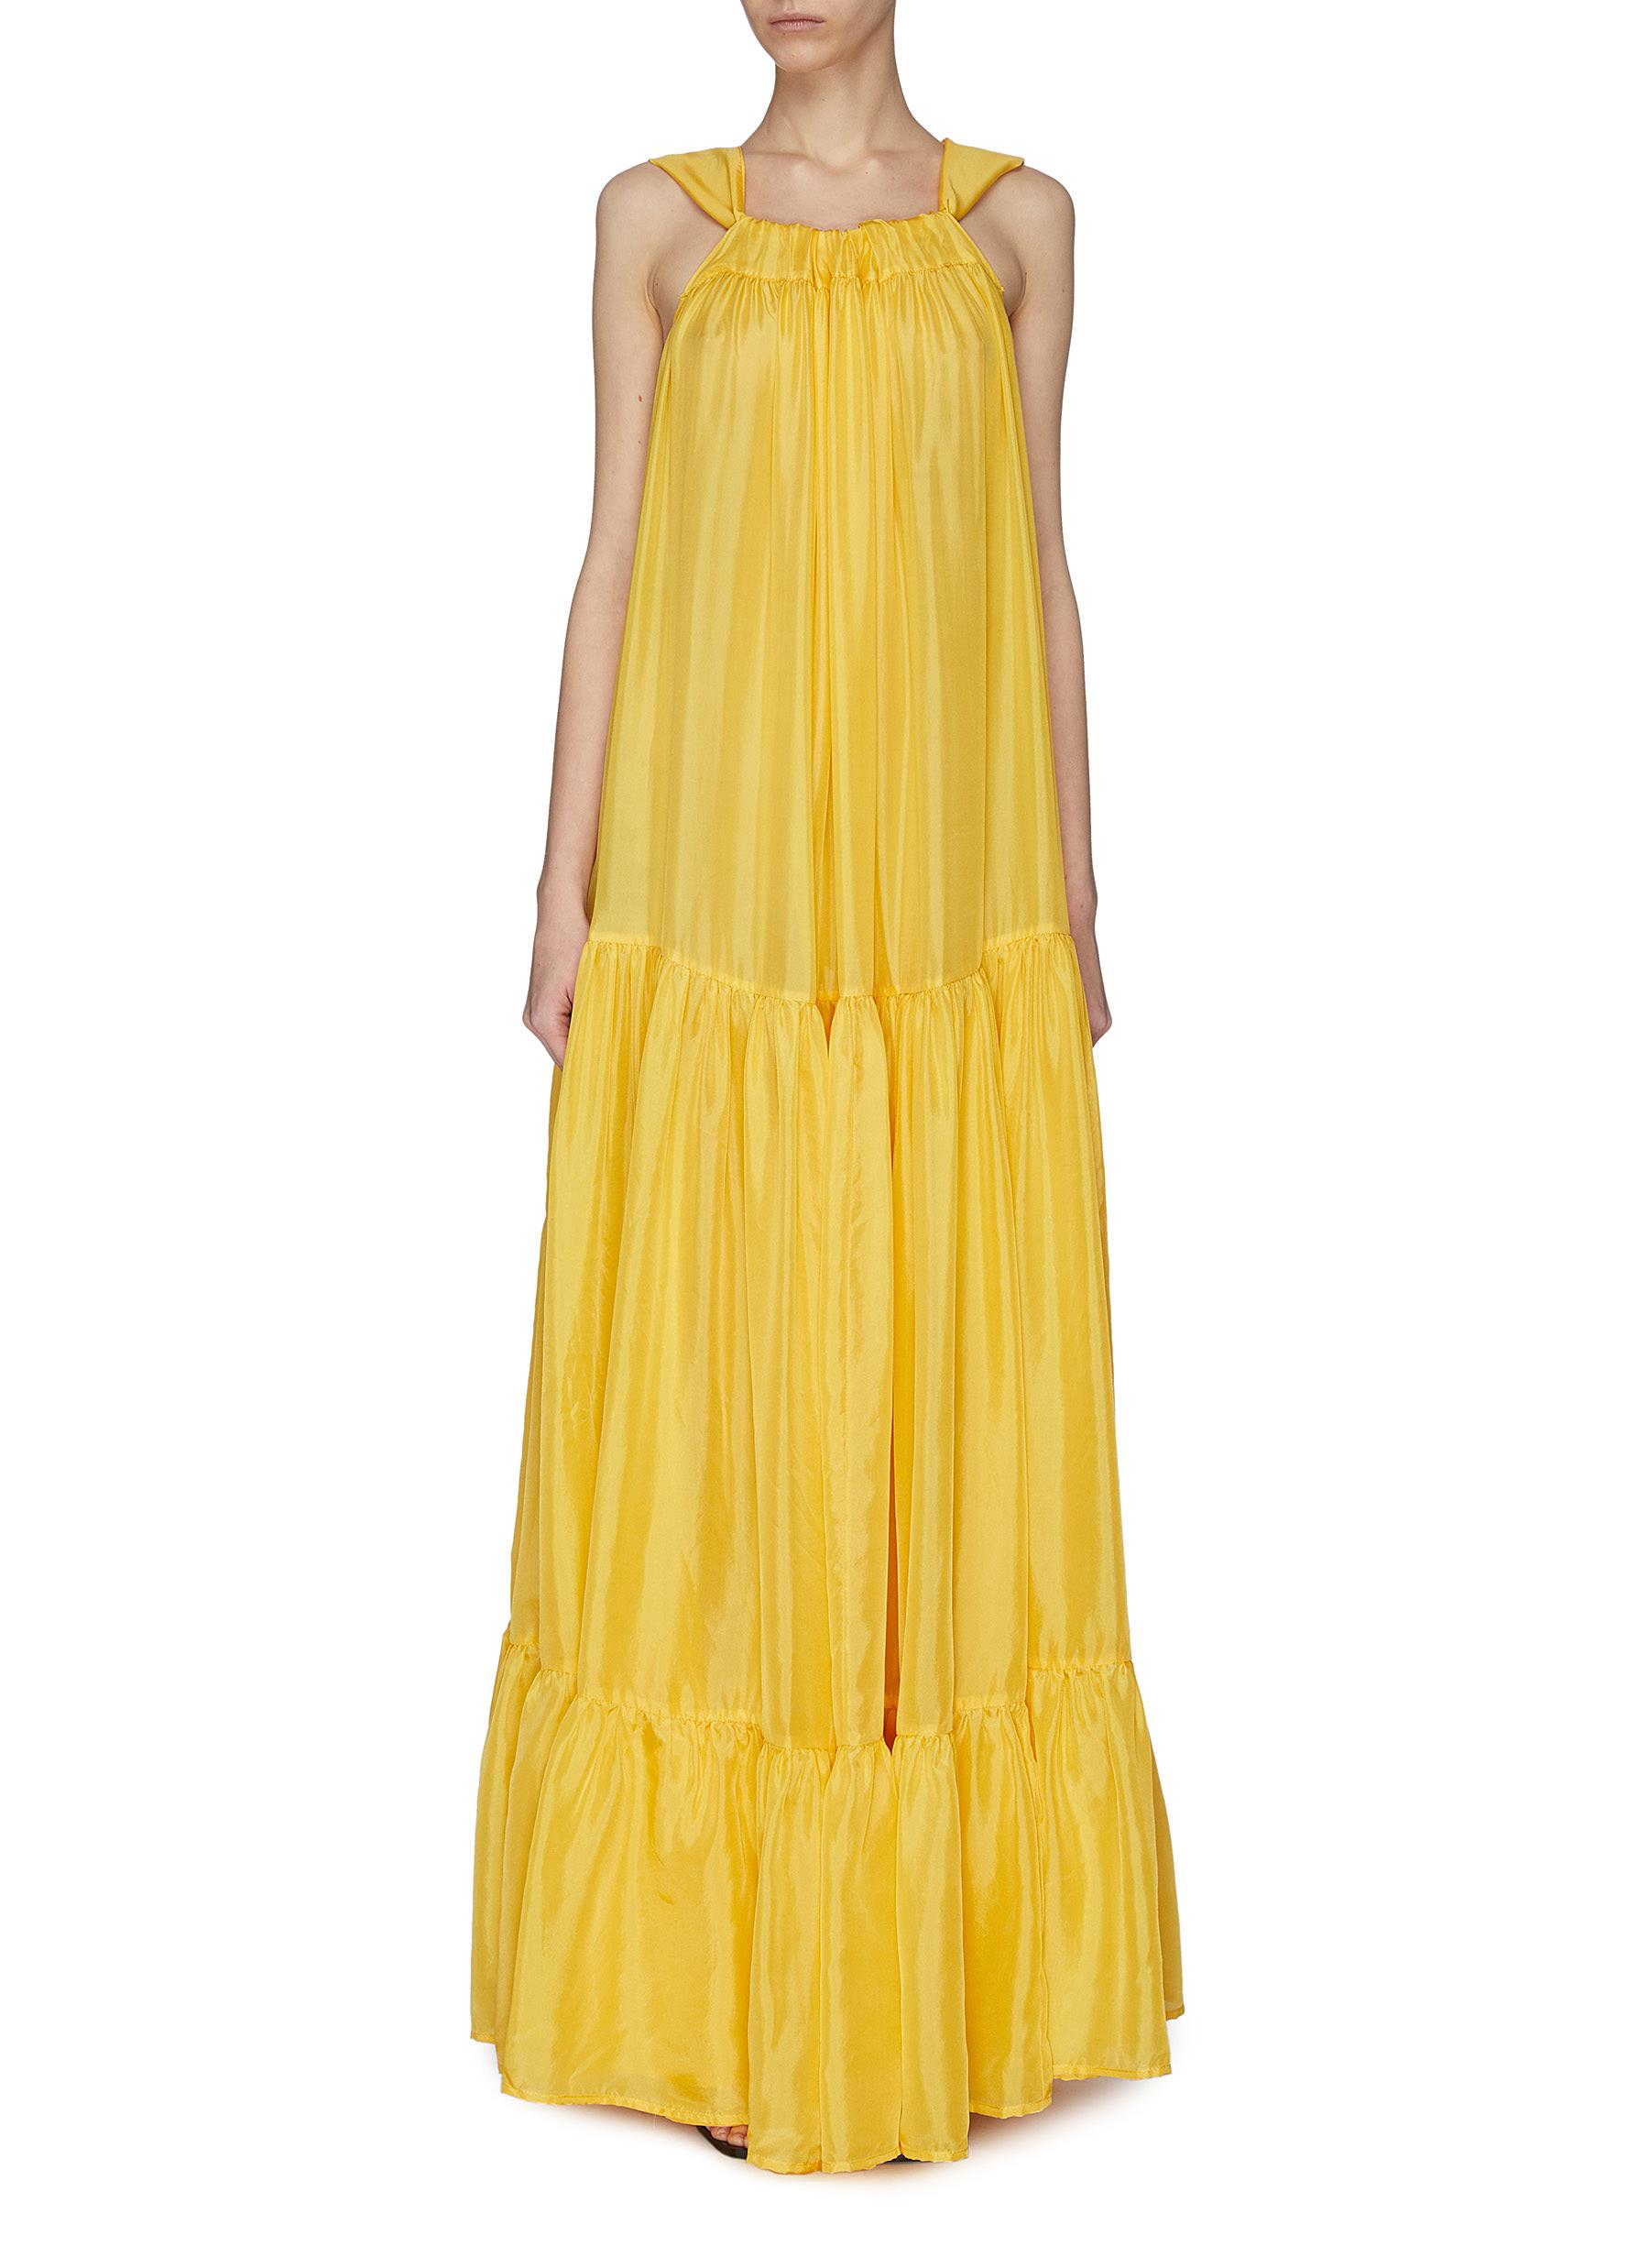 Buy Kalita Dresses 'Asiri' gathered gown